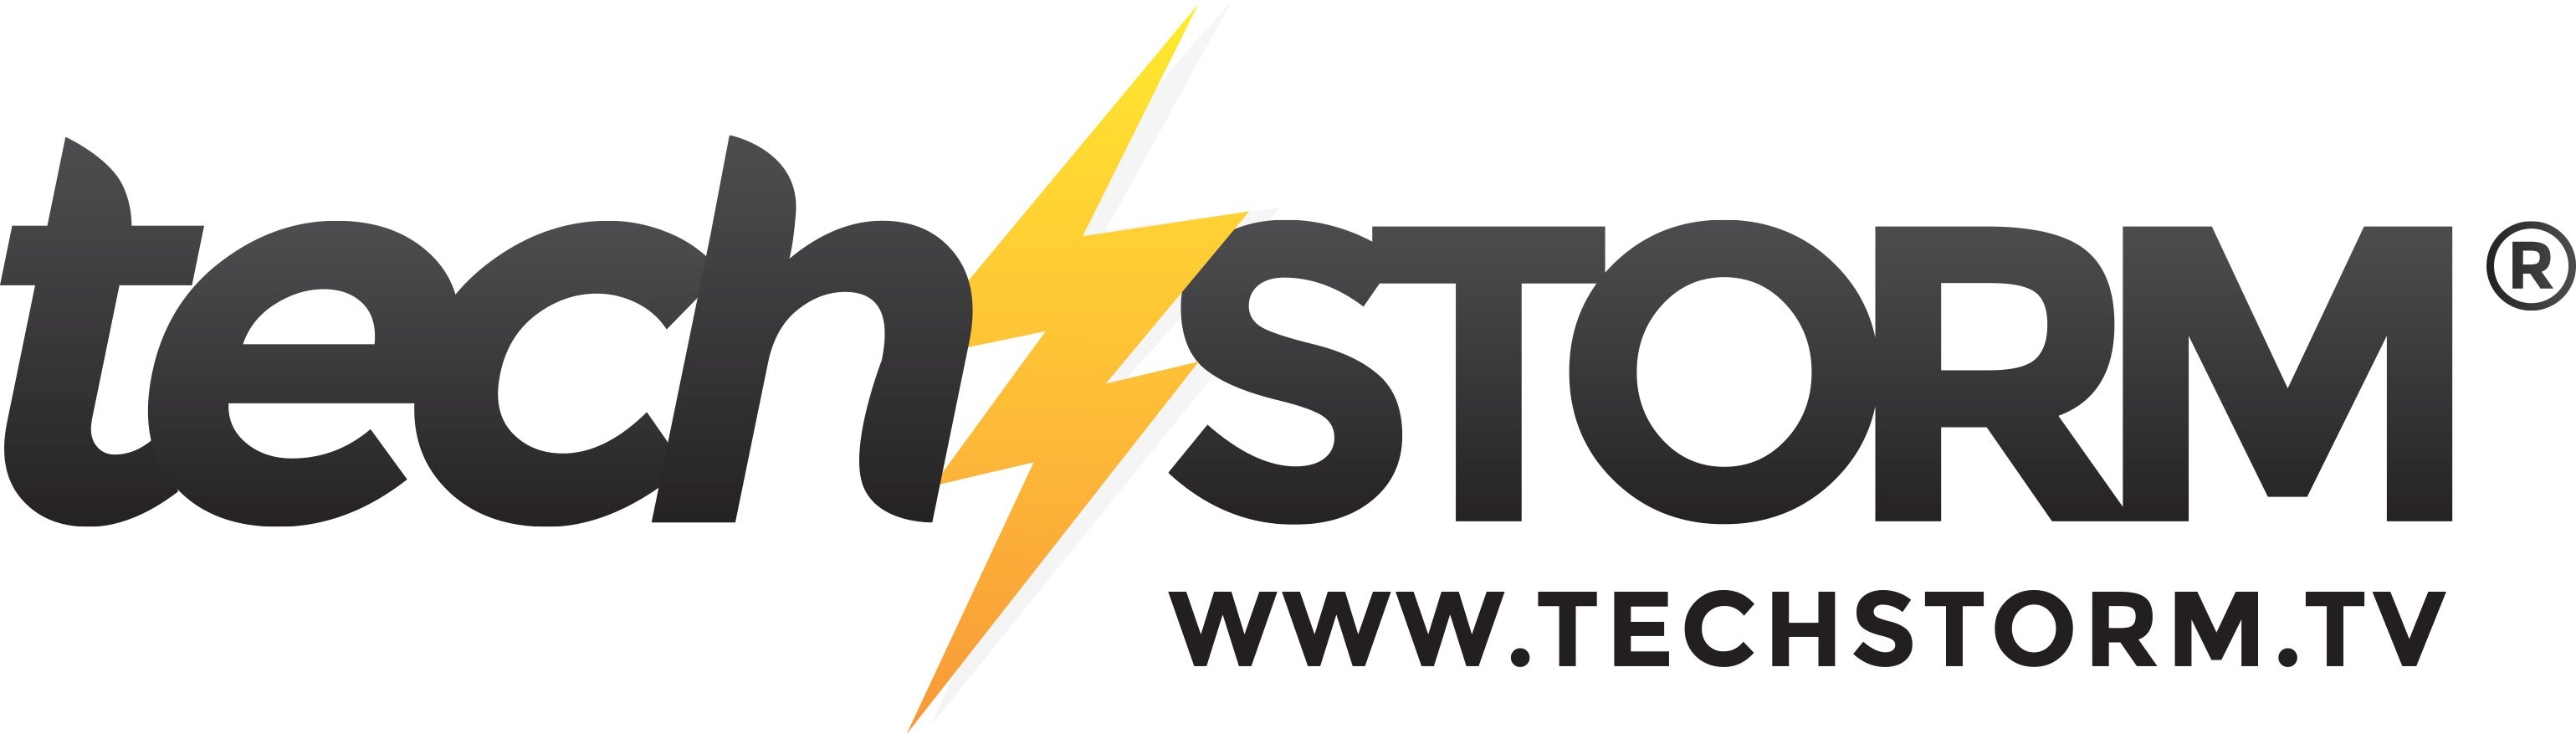 Techstorm TV